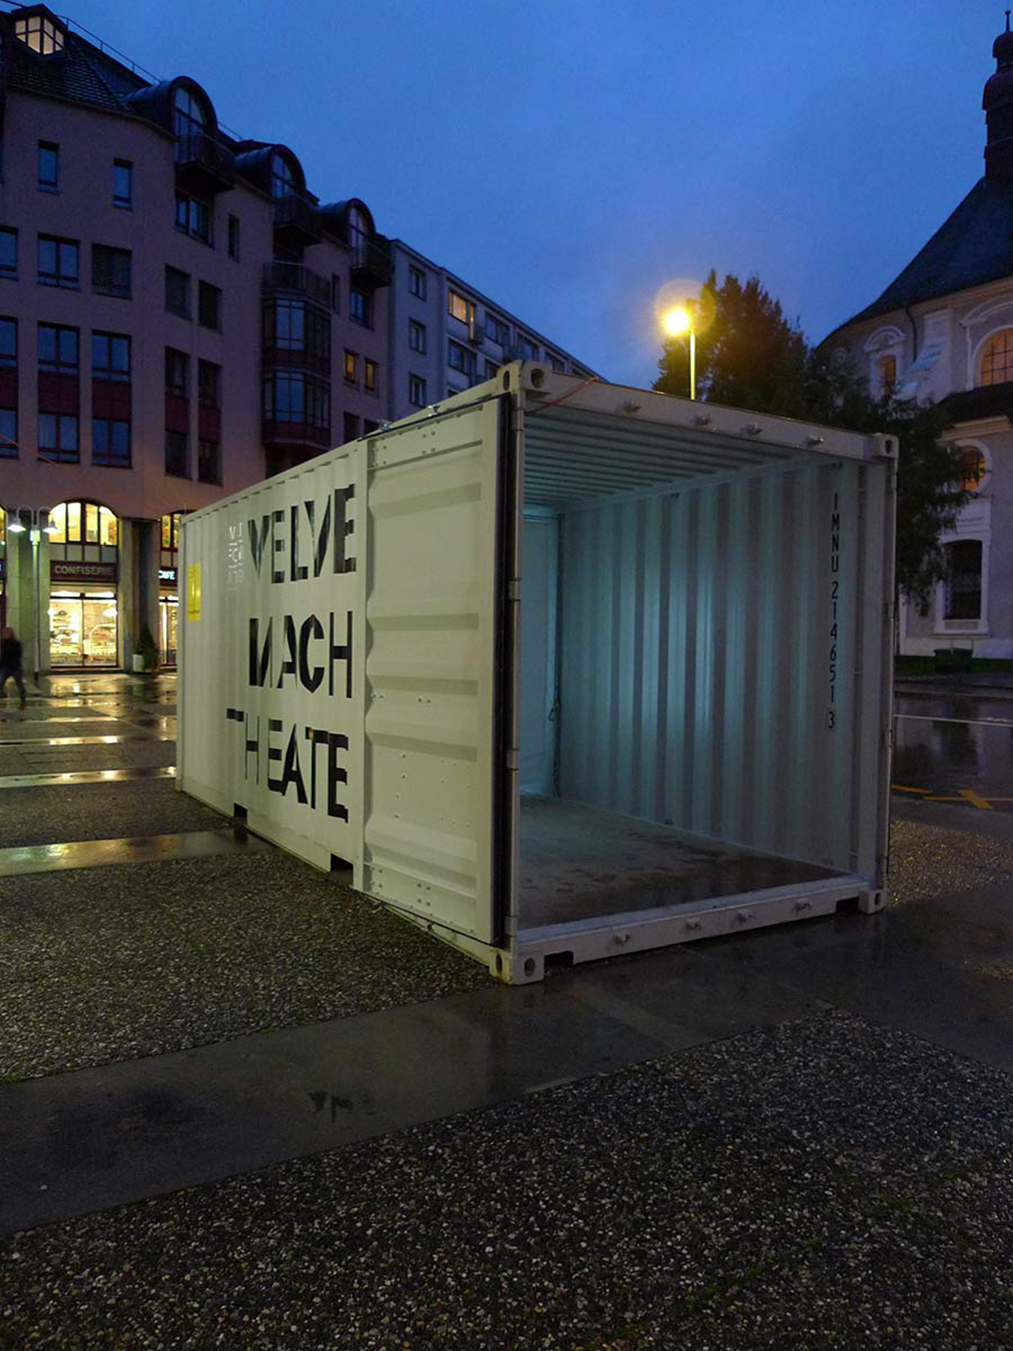 Velvet macht Theater Luzerner Theater Container